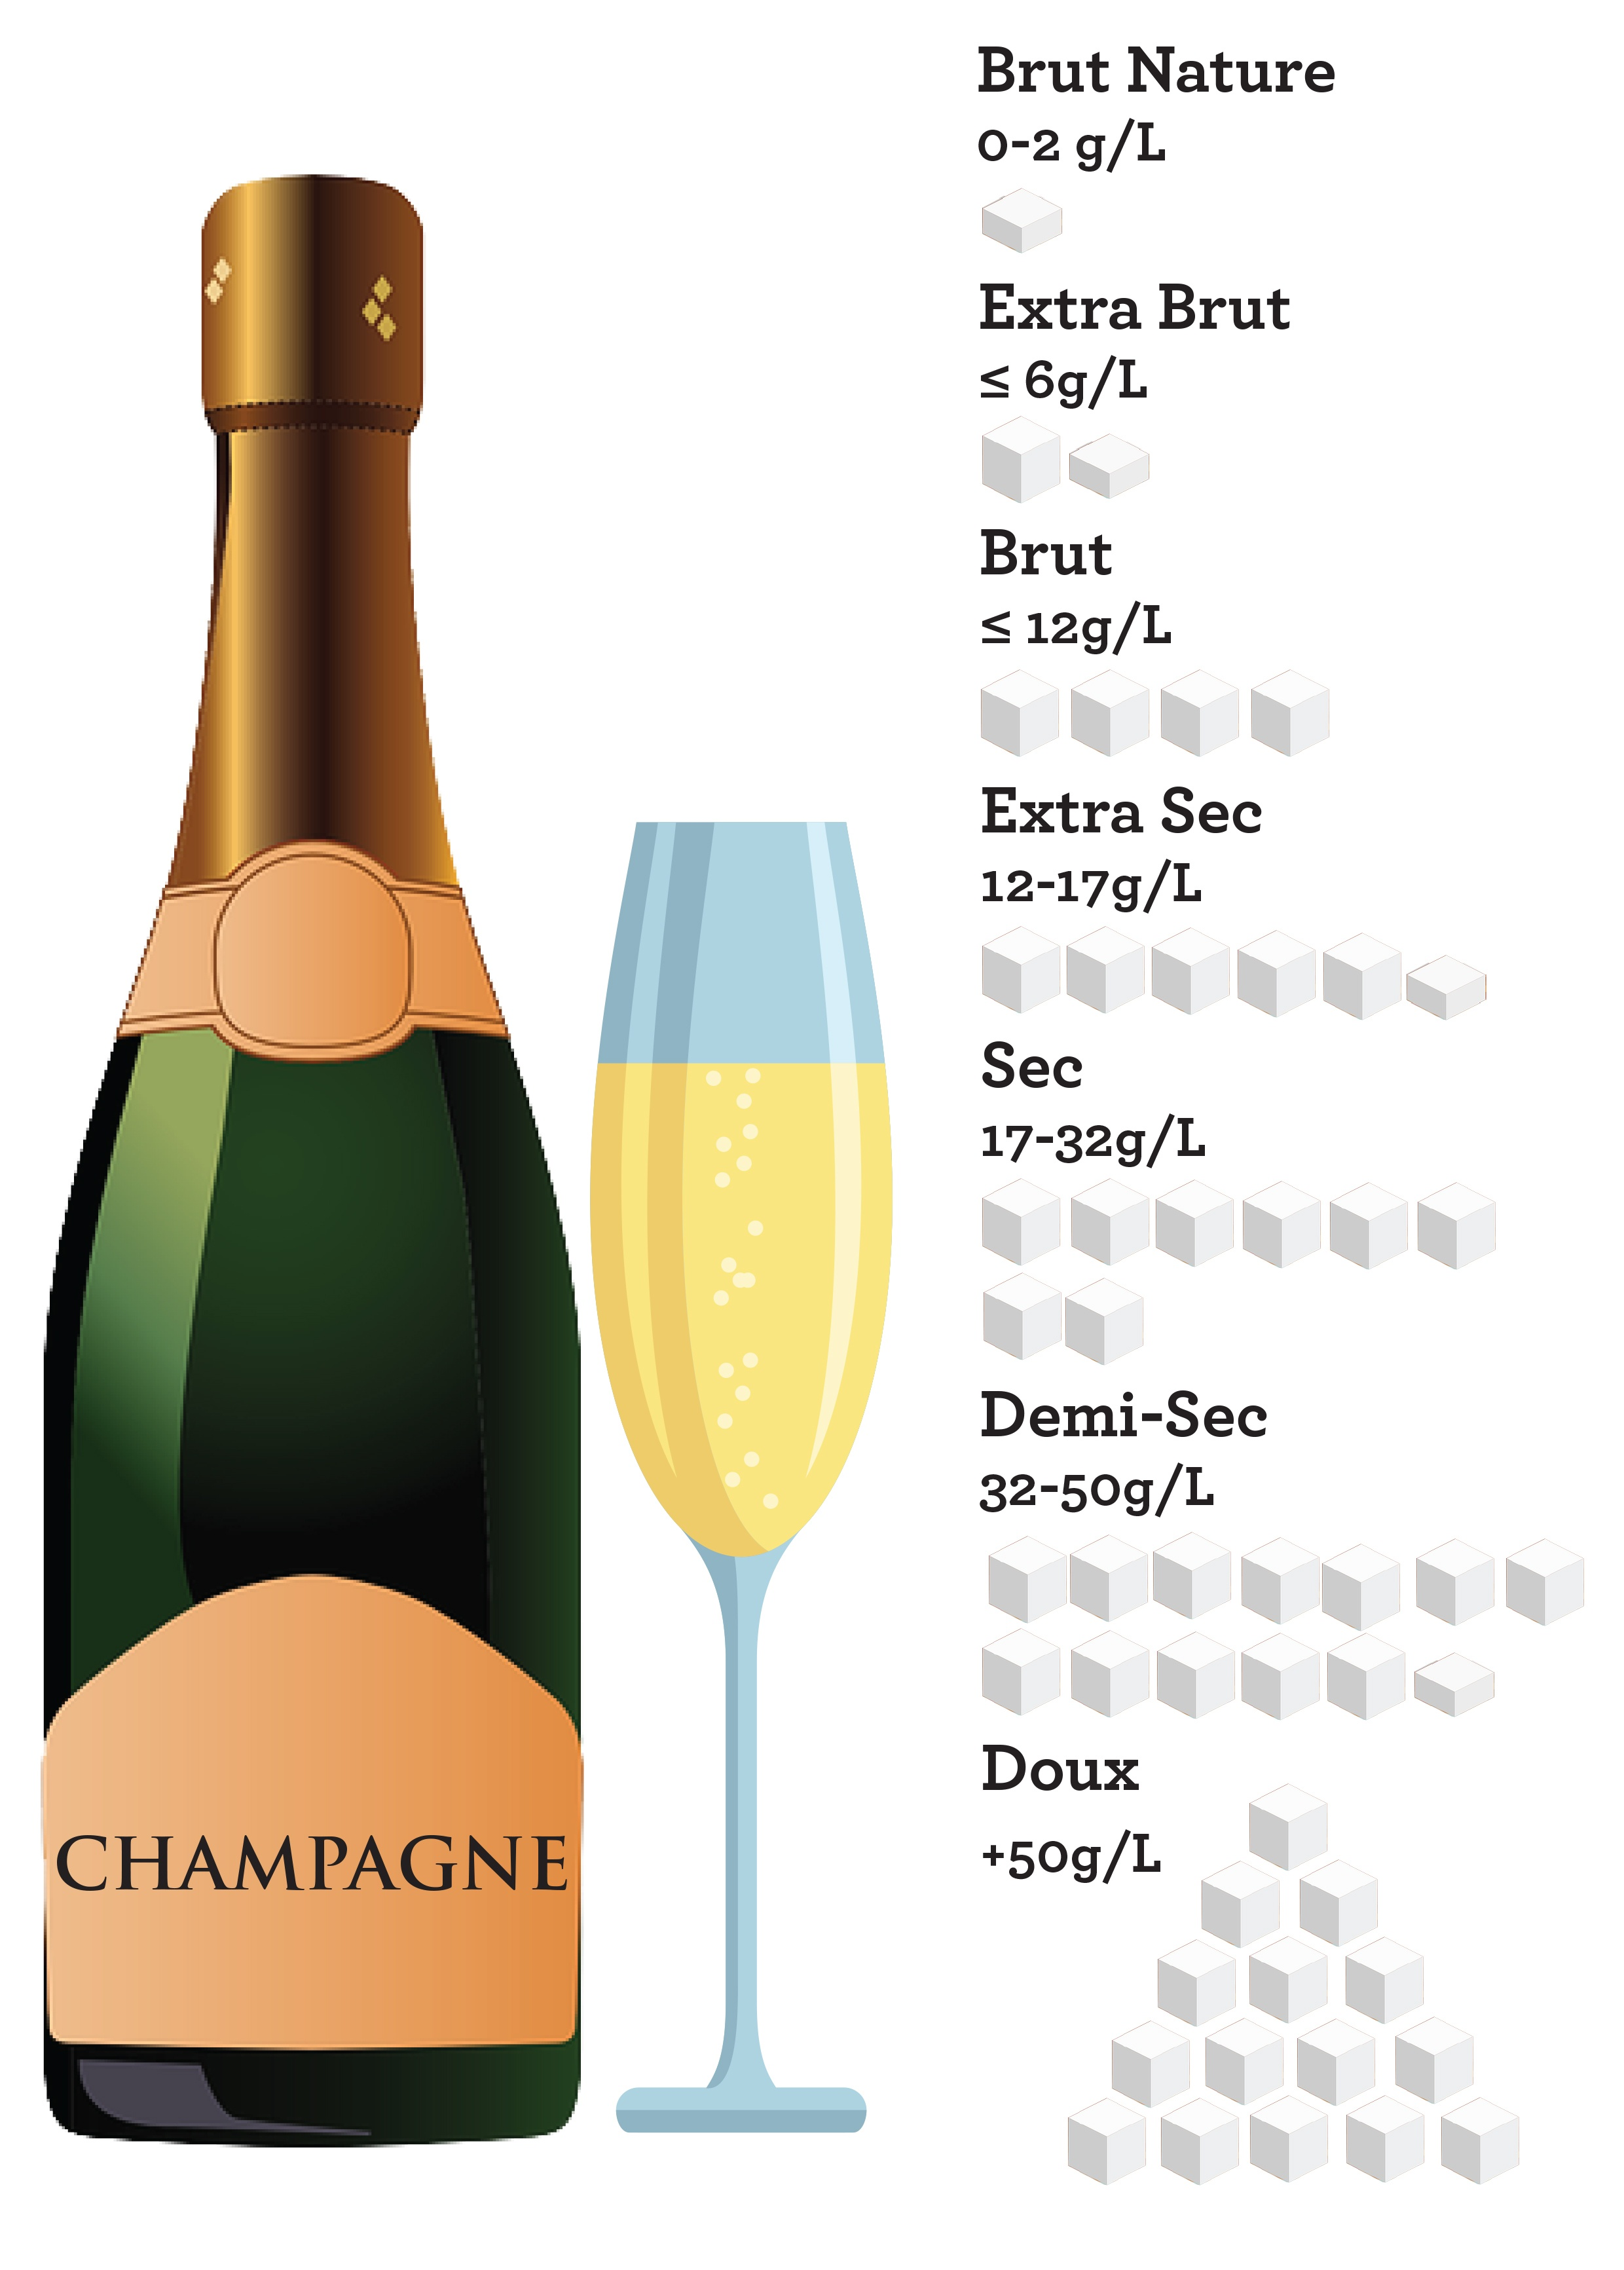 Labelling of Sweetness in Champagne Infographic